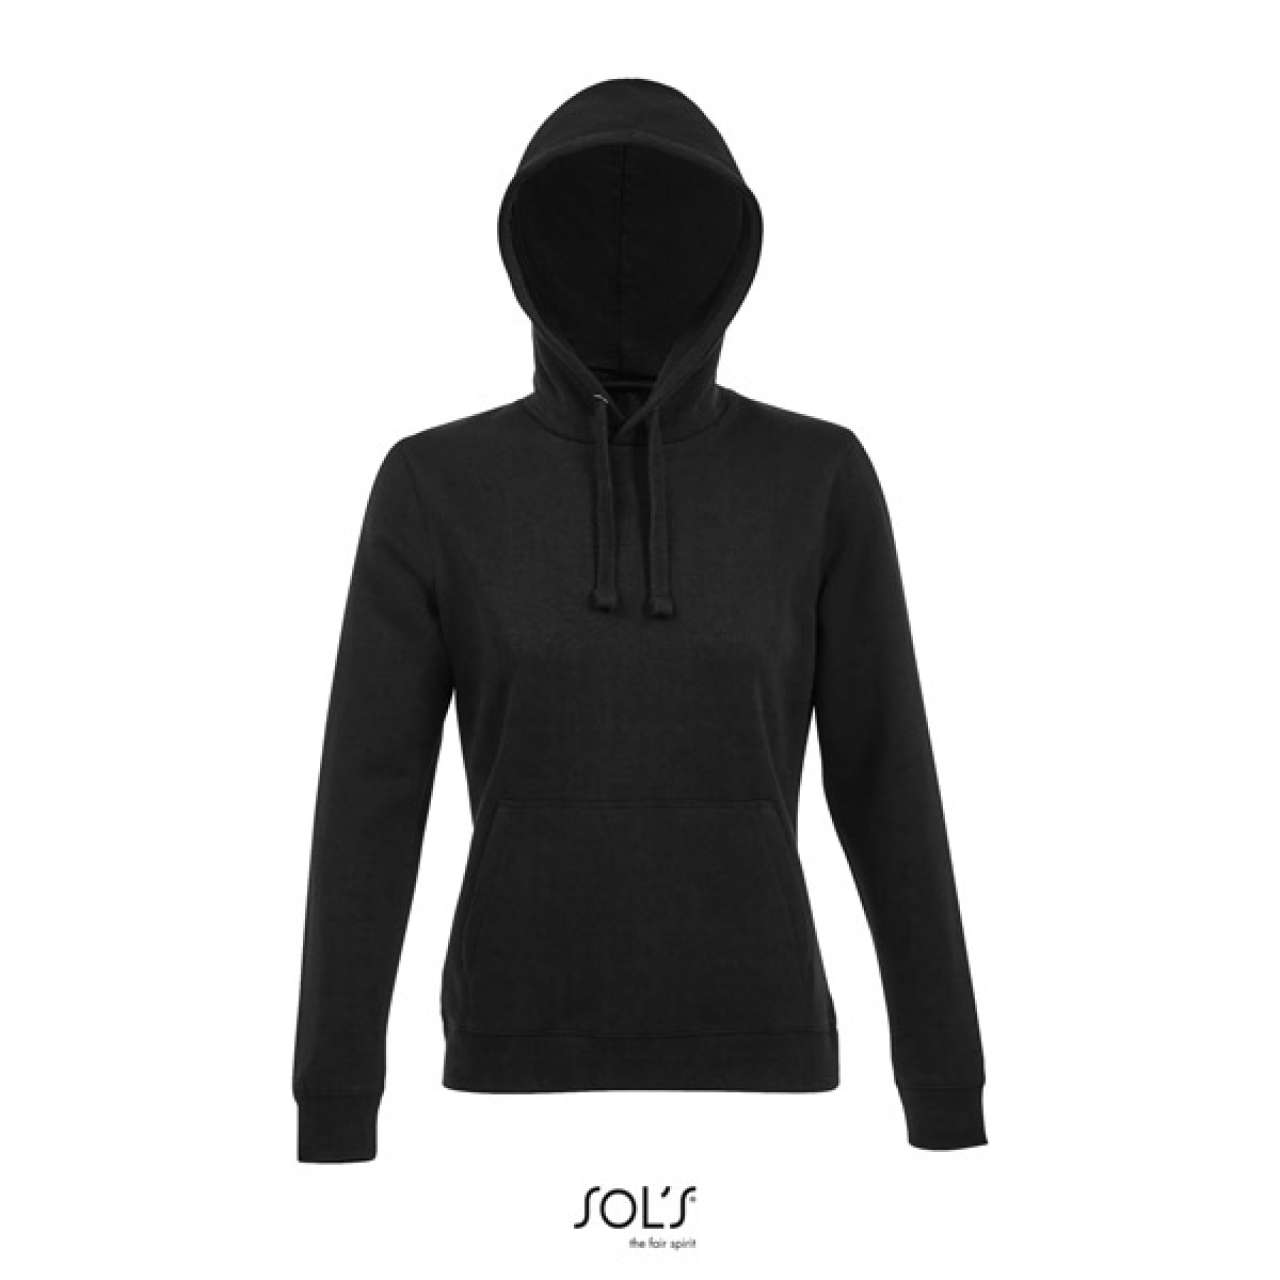 SPENCER WOMEN - HOODED SWEATSHIRT